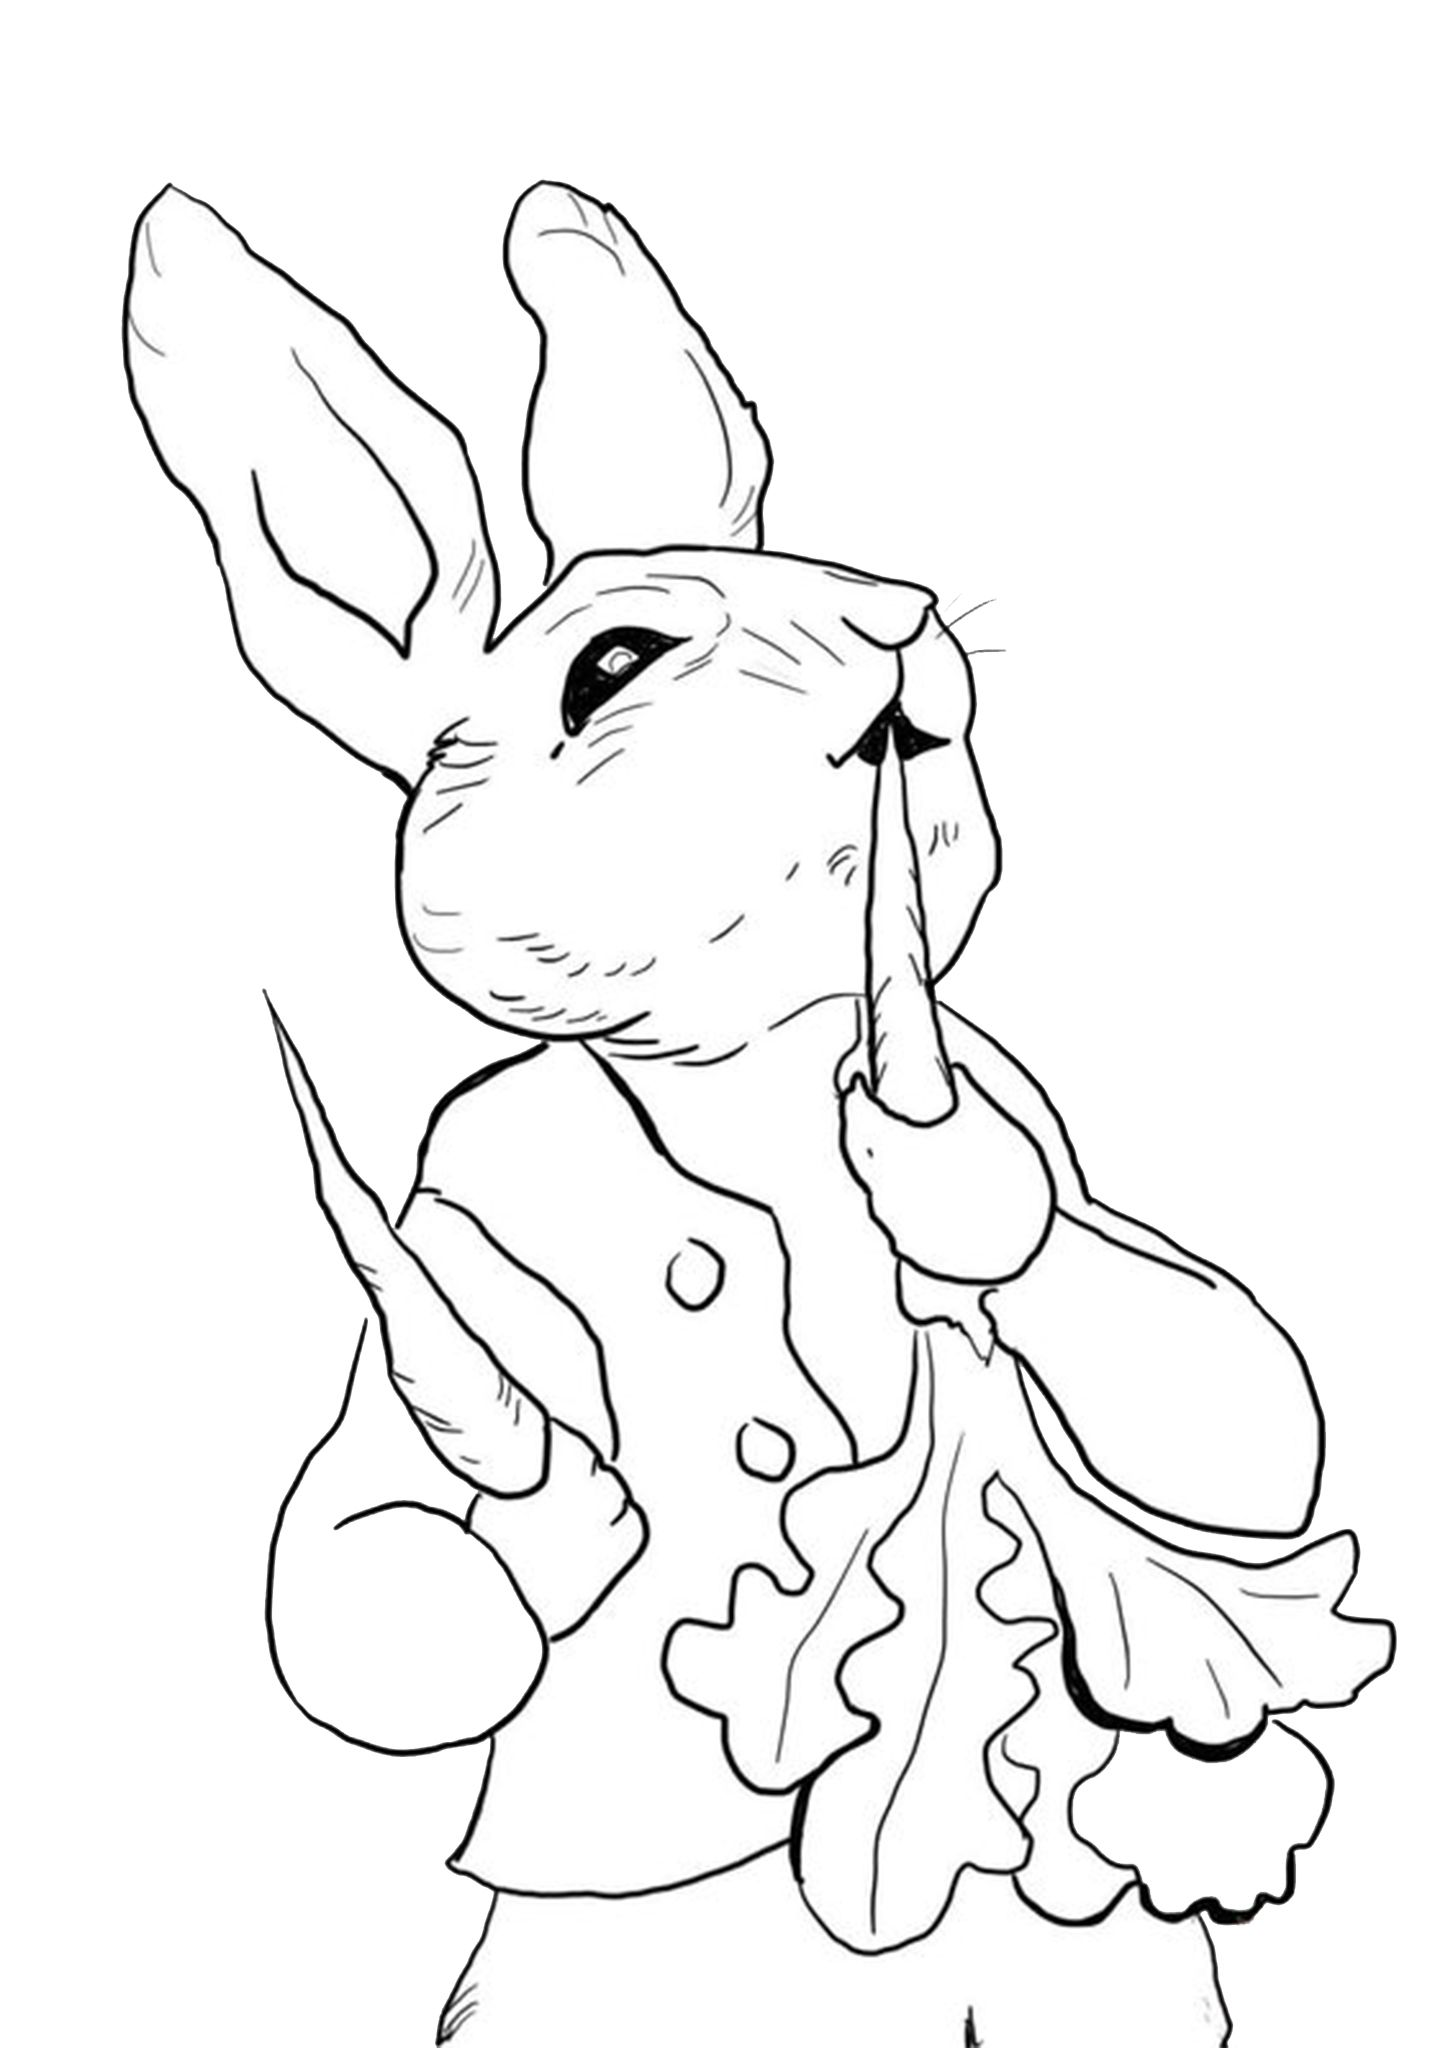 Free Easy To Print Bunny Coloring Pages Bunny Coloring Pages Peter Rabbit Illustration Rabbit Colors